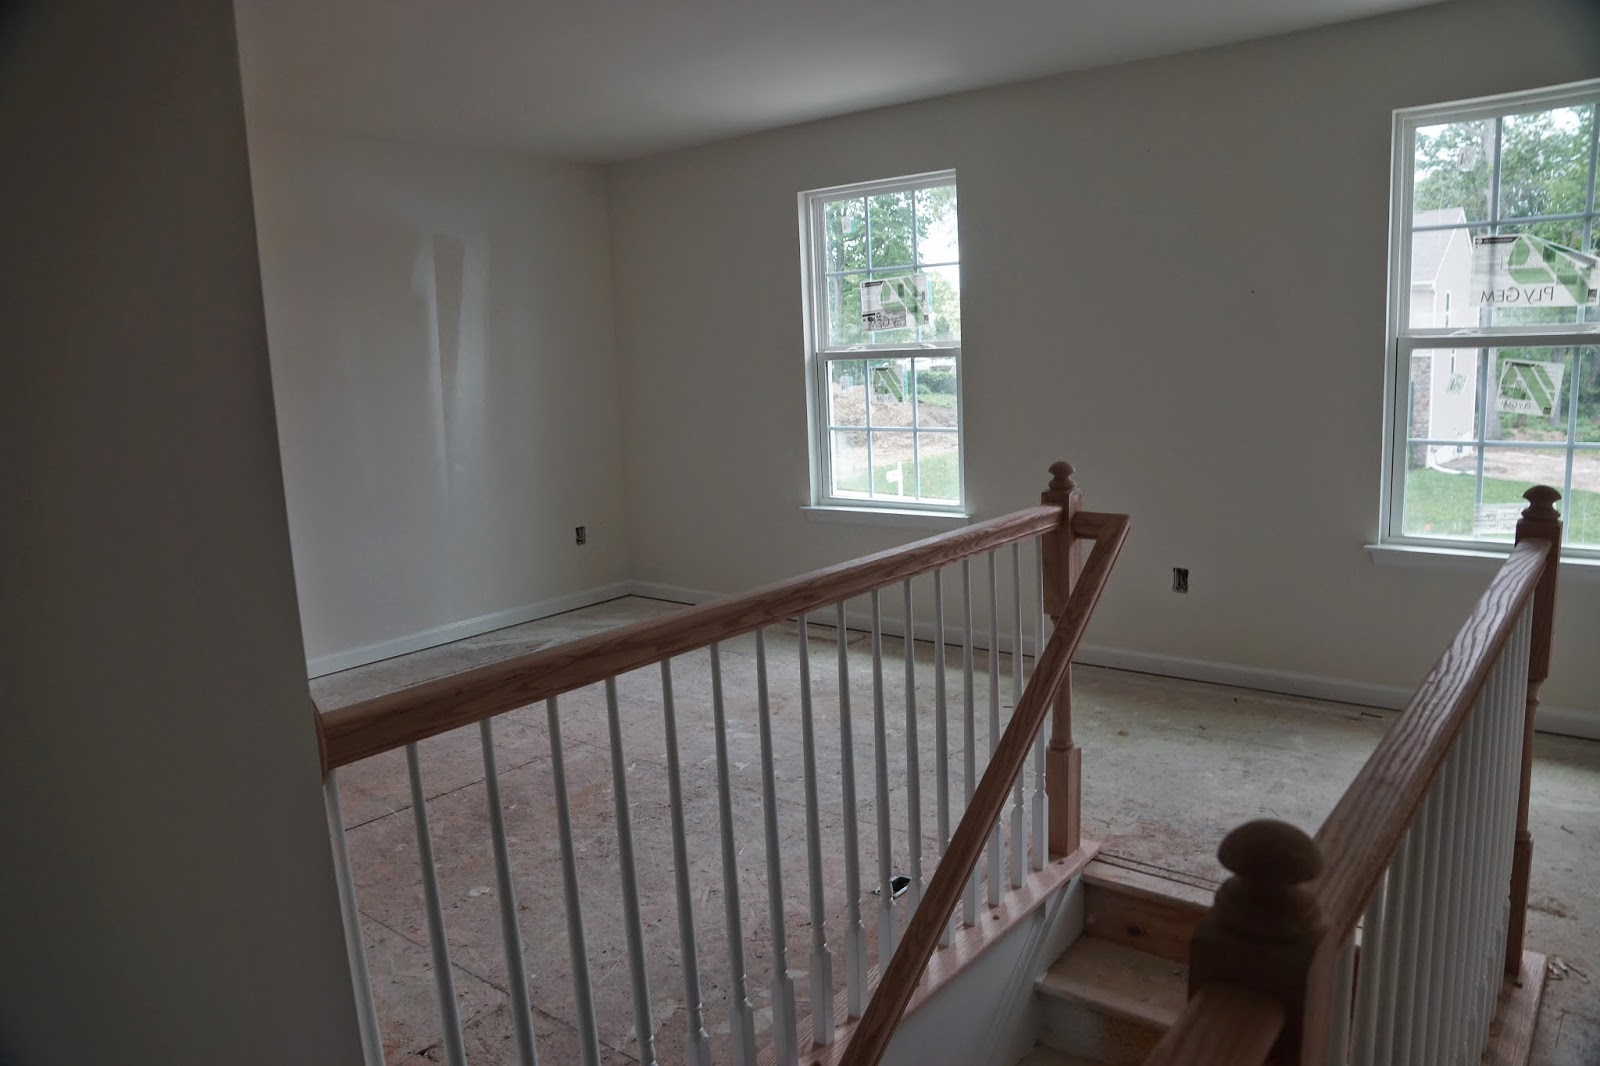 Picture of the unfinished banister on the top of the stairs as viewed from the middle of the hallway